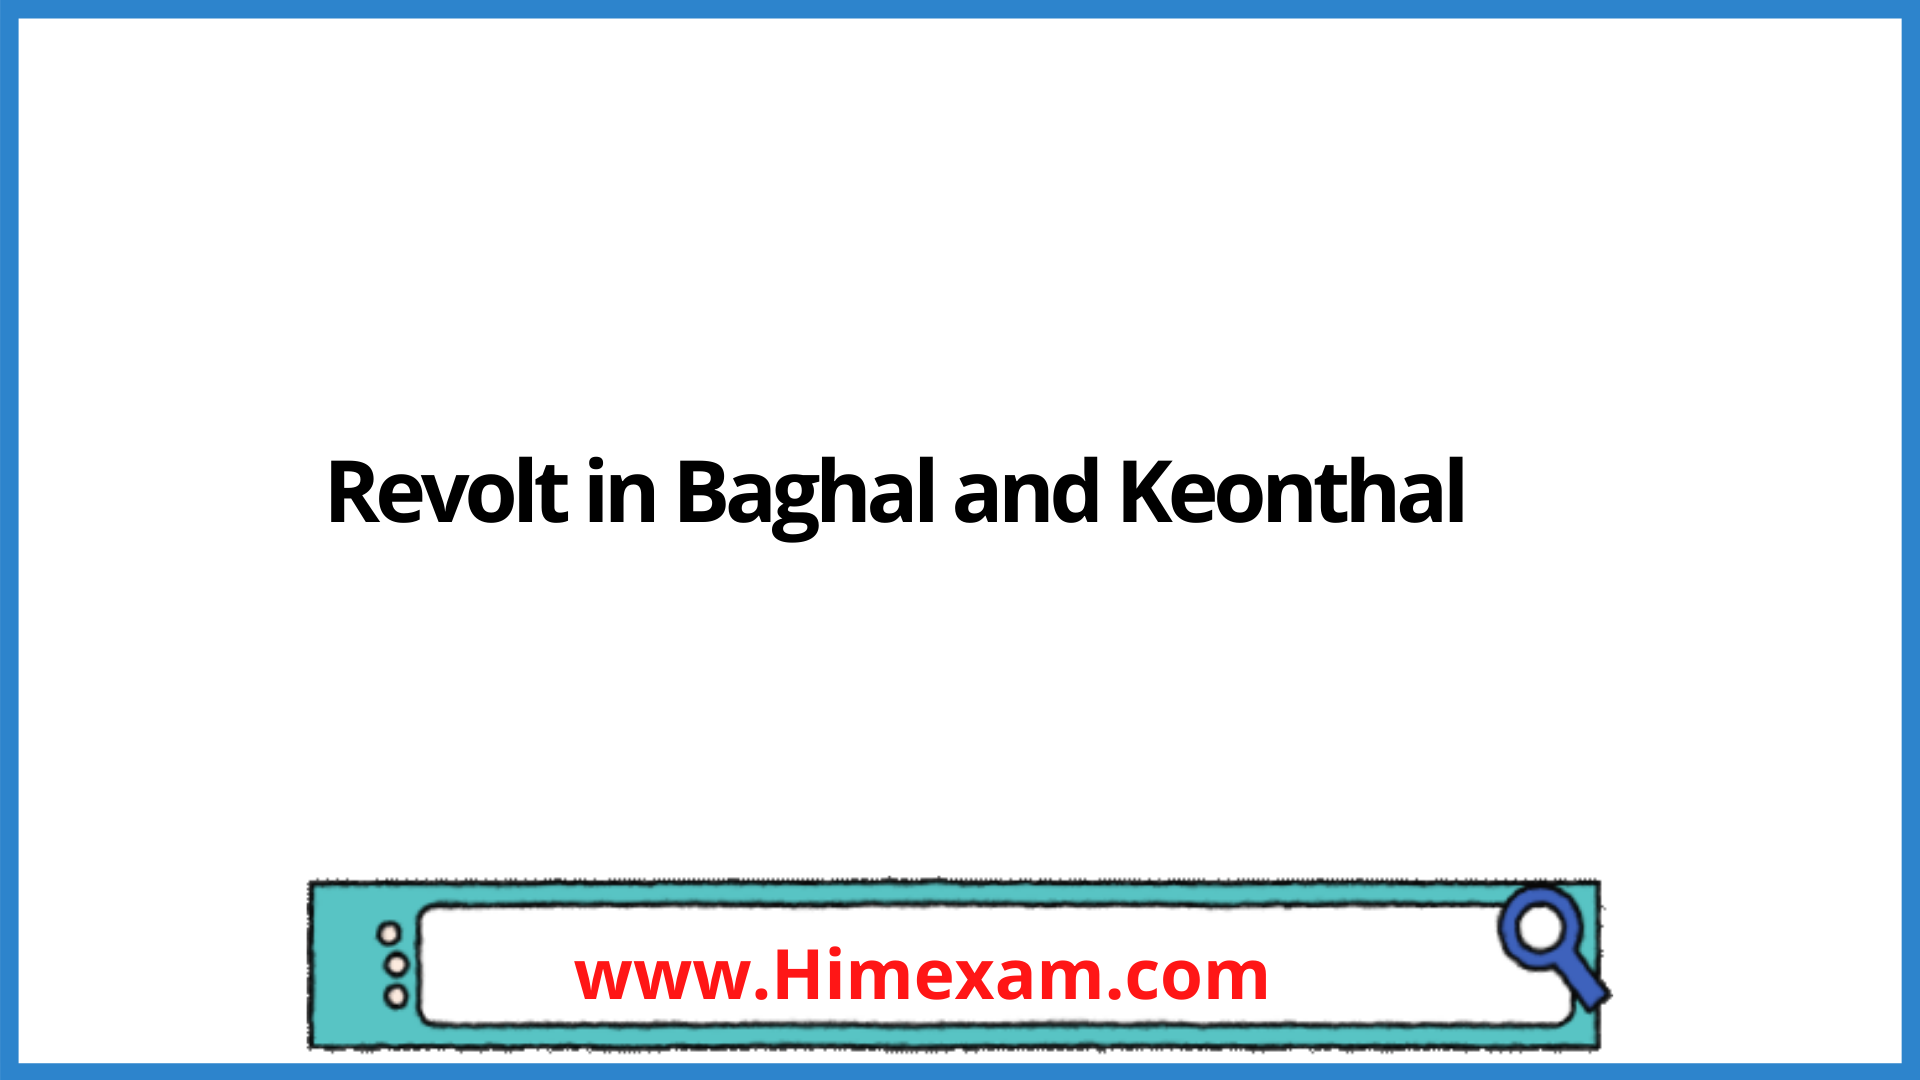 Revolt in Baghal and Keonthal